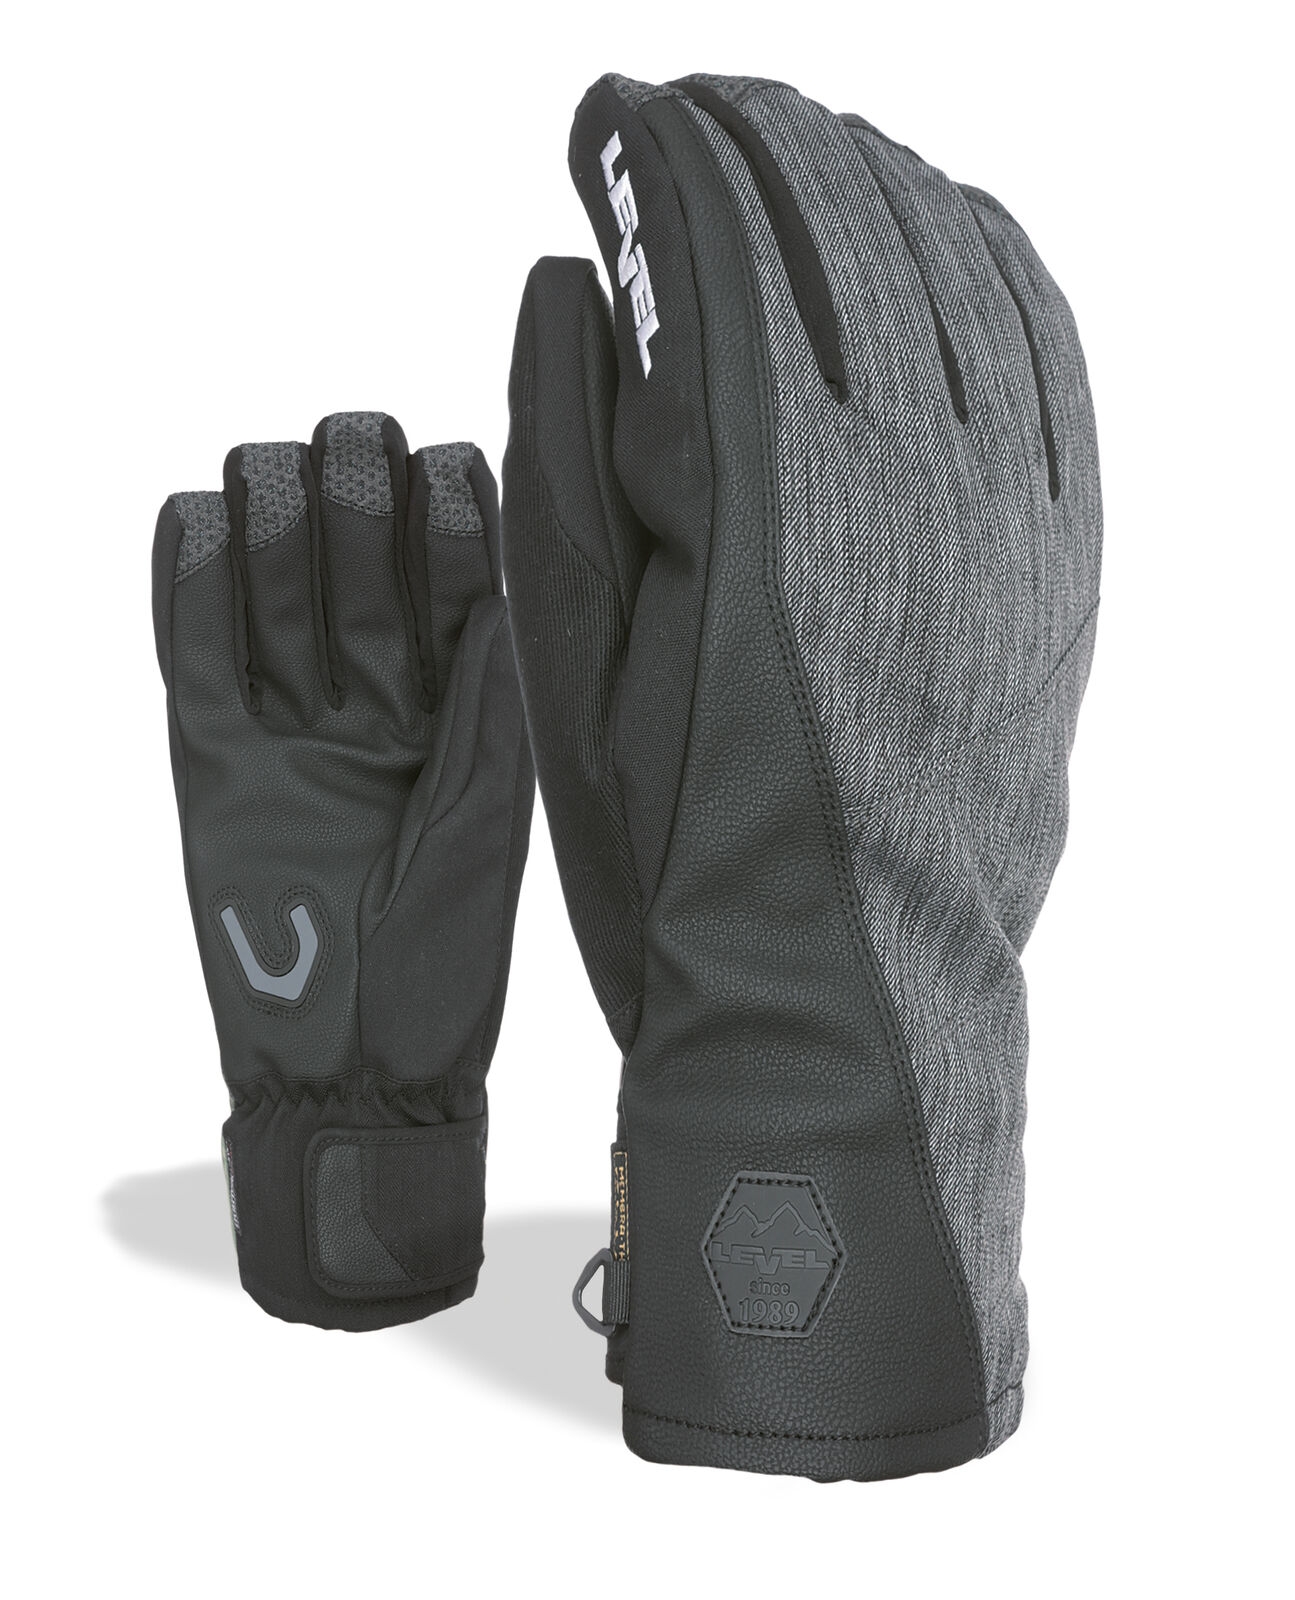 Level Guantes Matrix Duo blue Impermeable Transpirable Cálidos